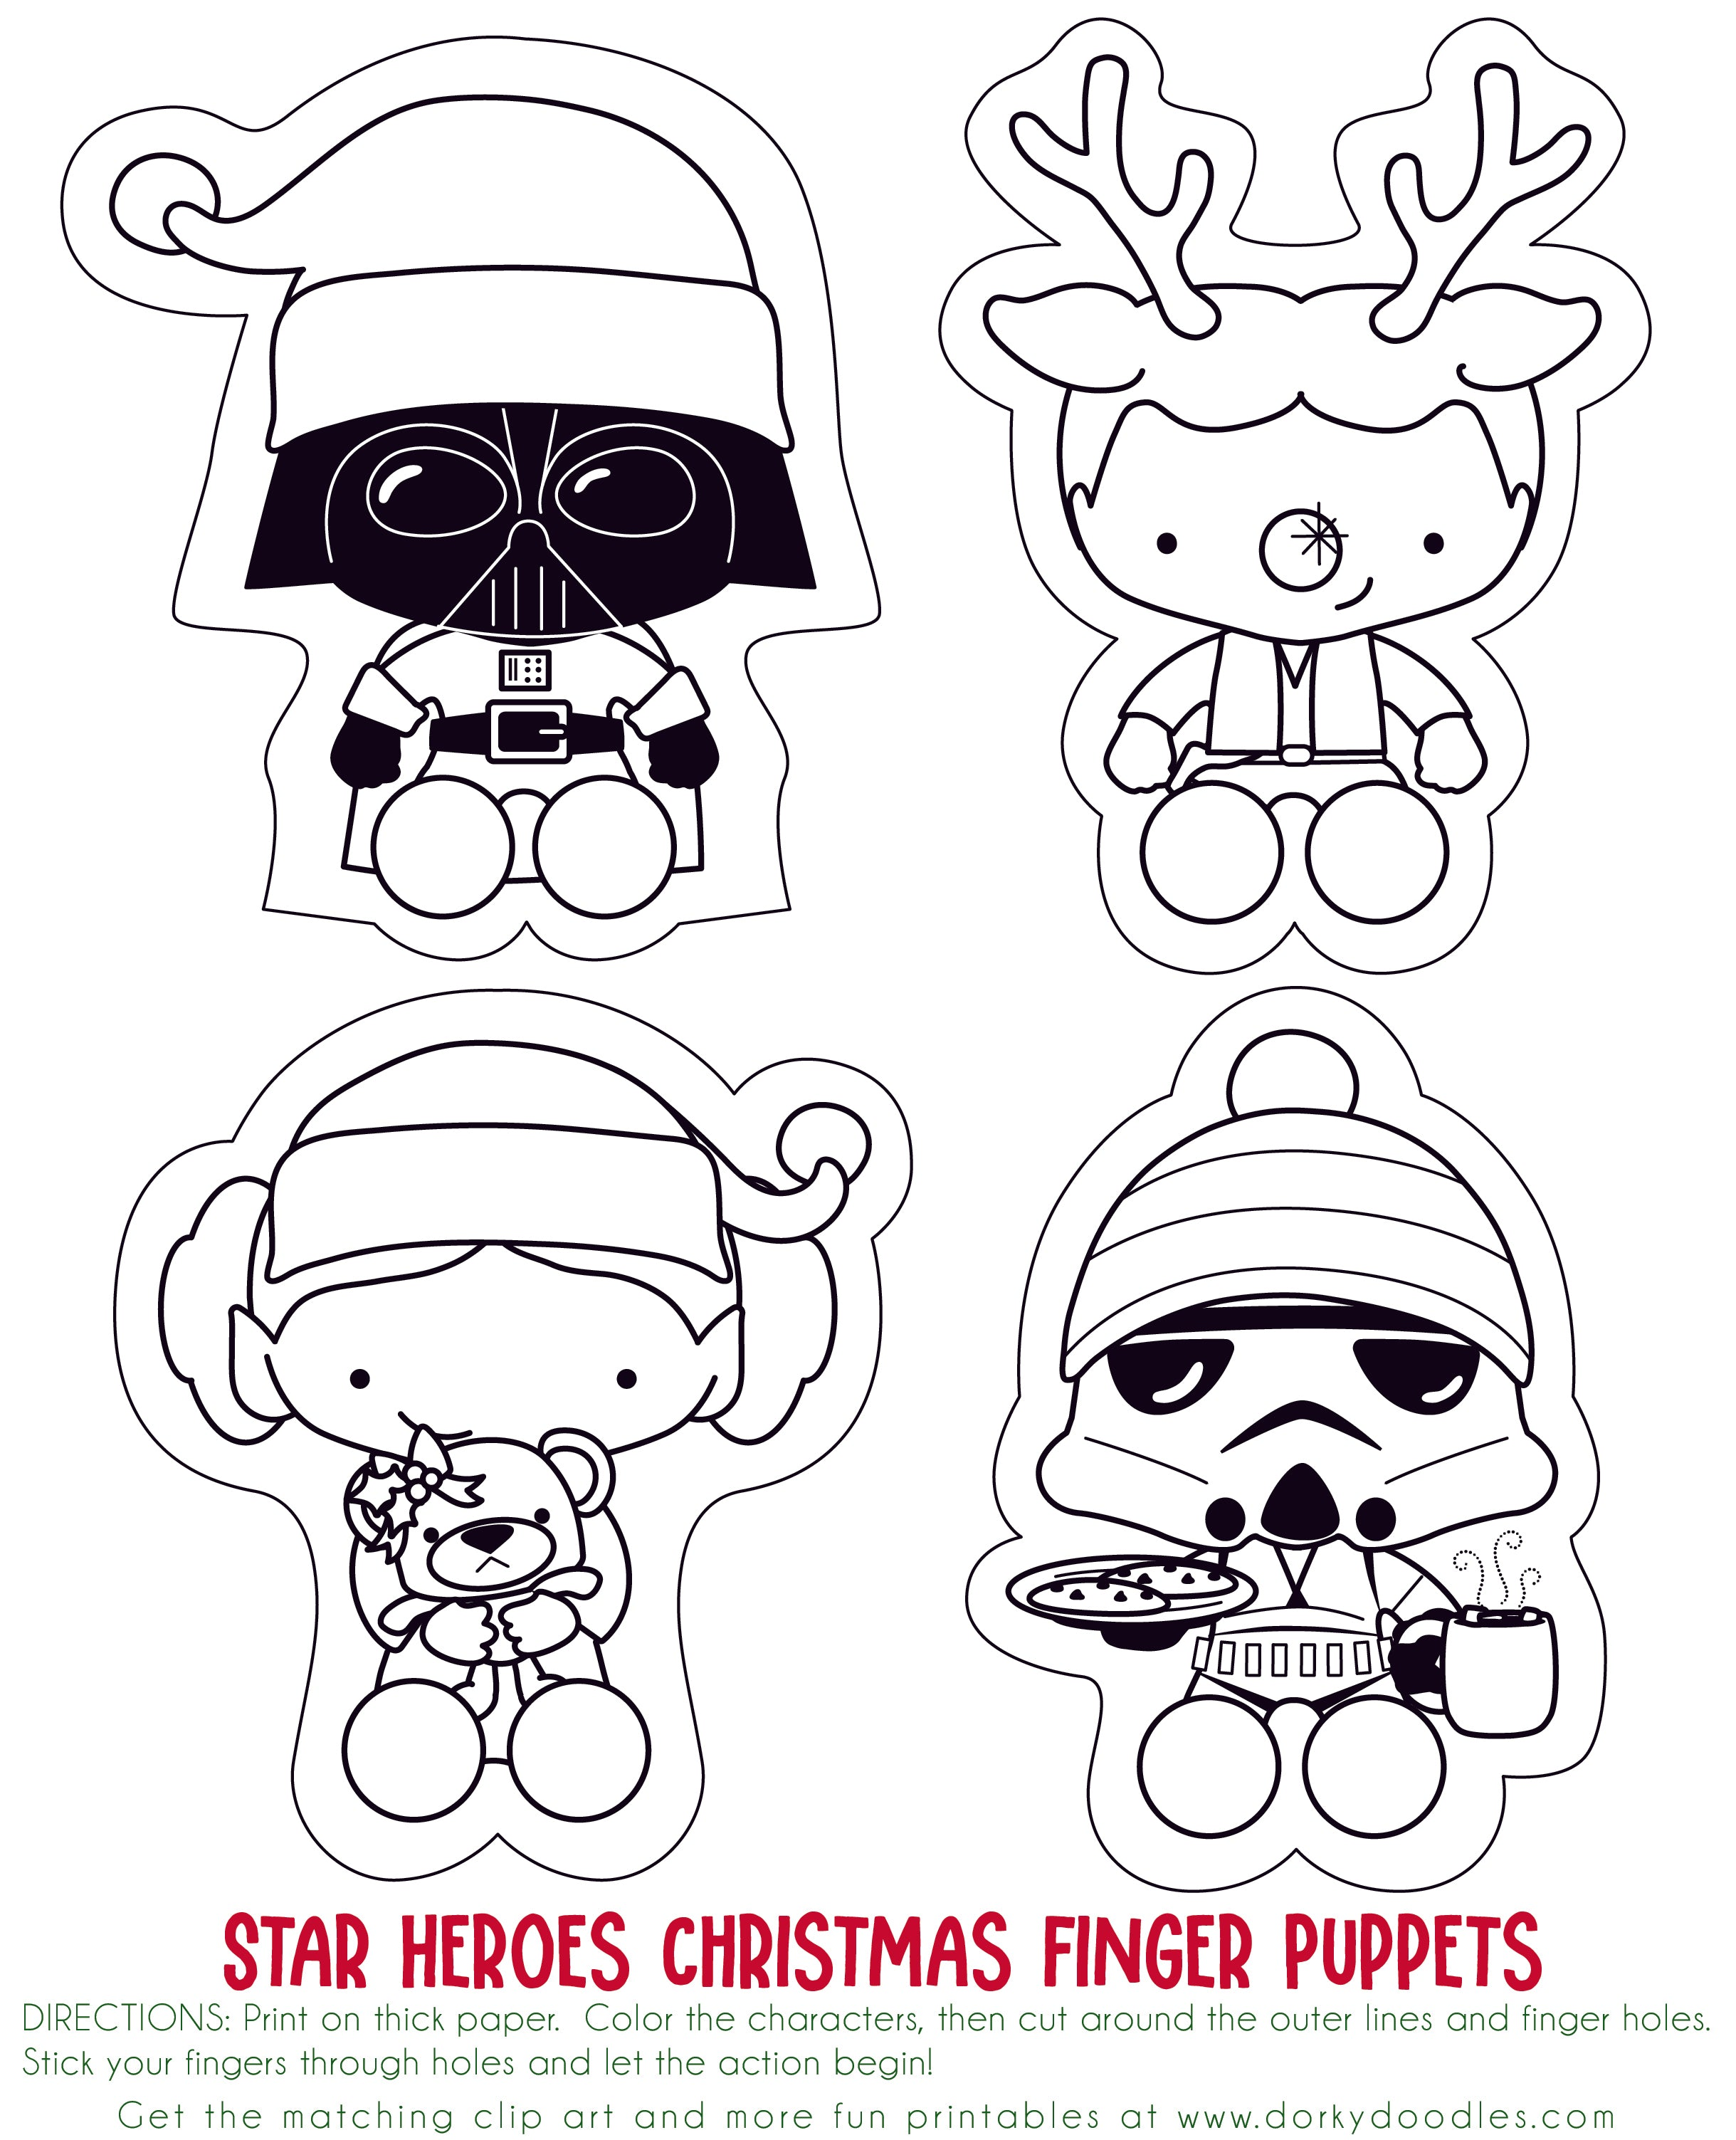 image relating to Printable Puppets on a Stick identified as Star Heroes Printable Xmas Finger Puppets Dorky Doodles